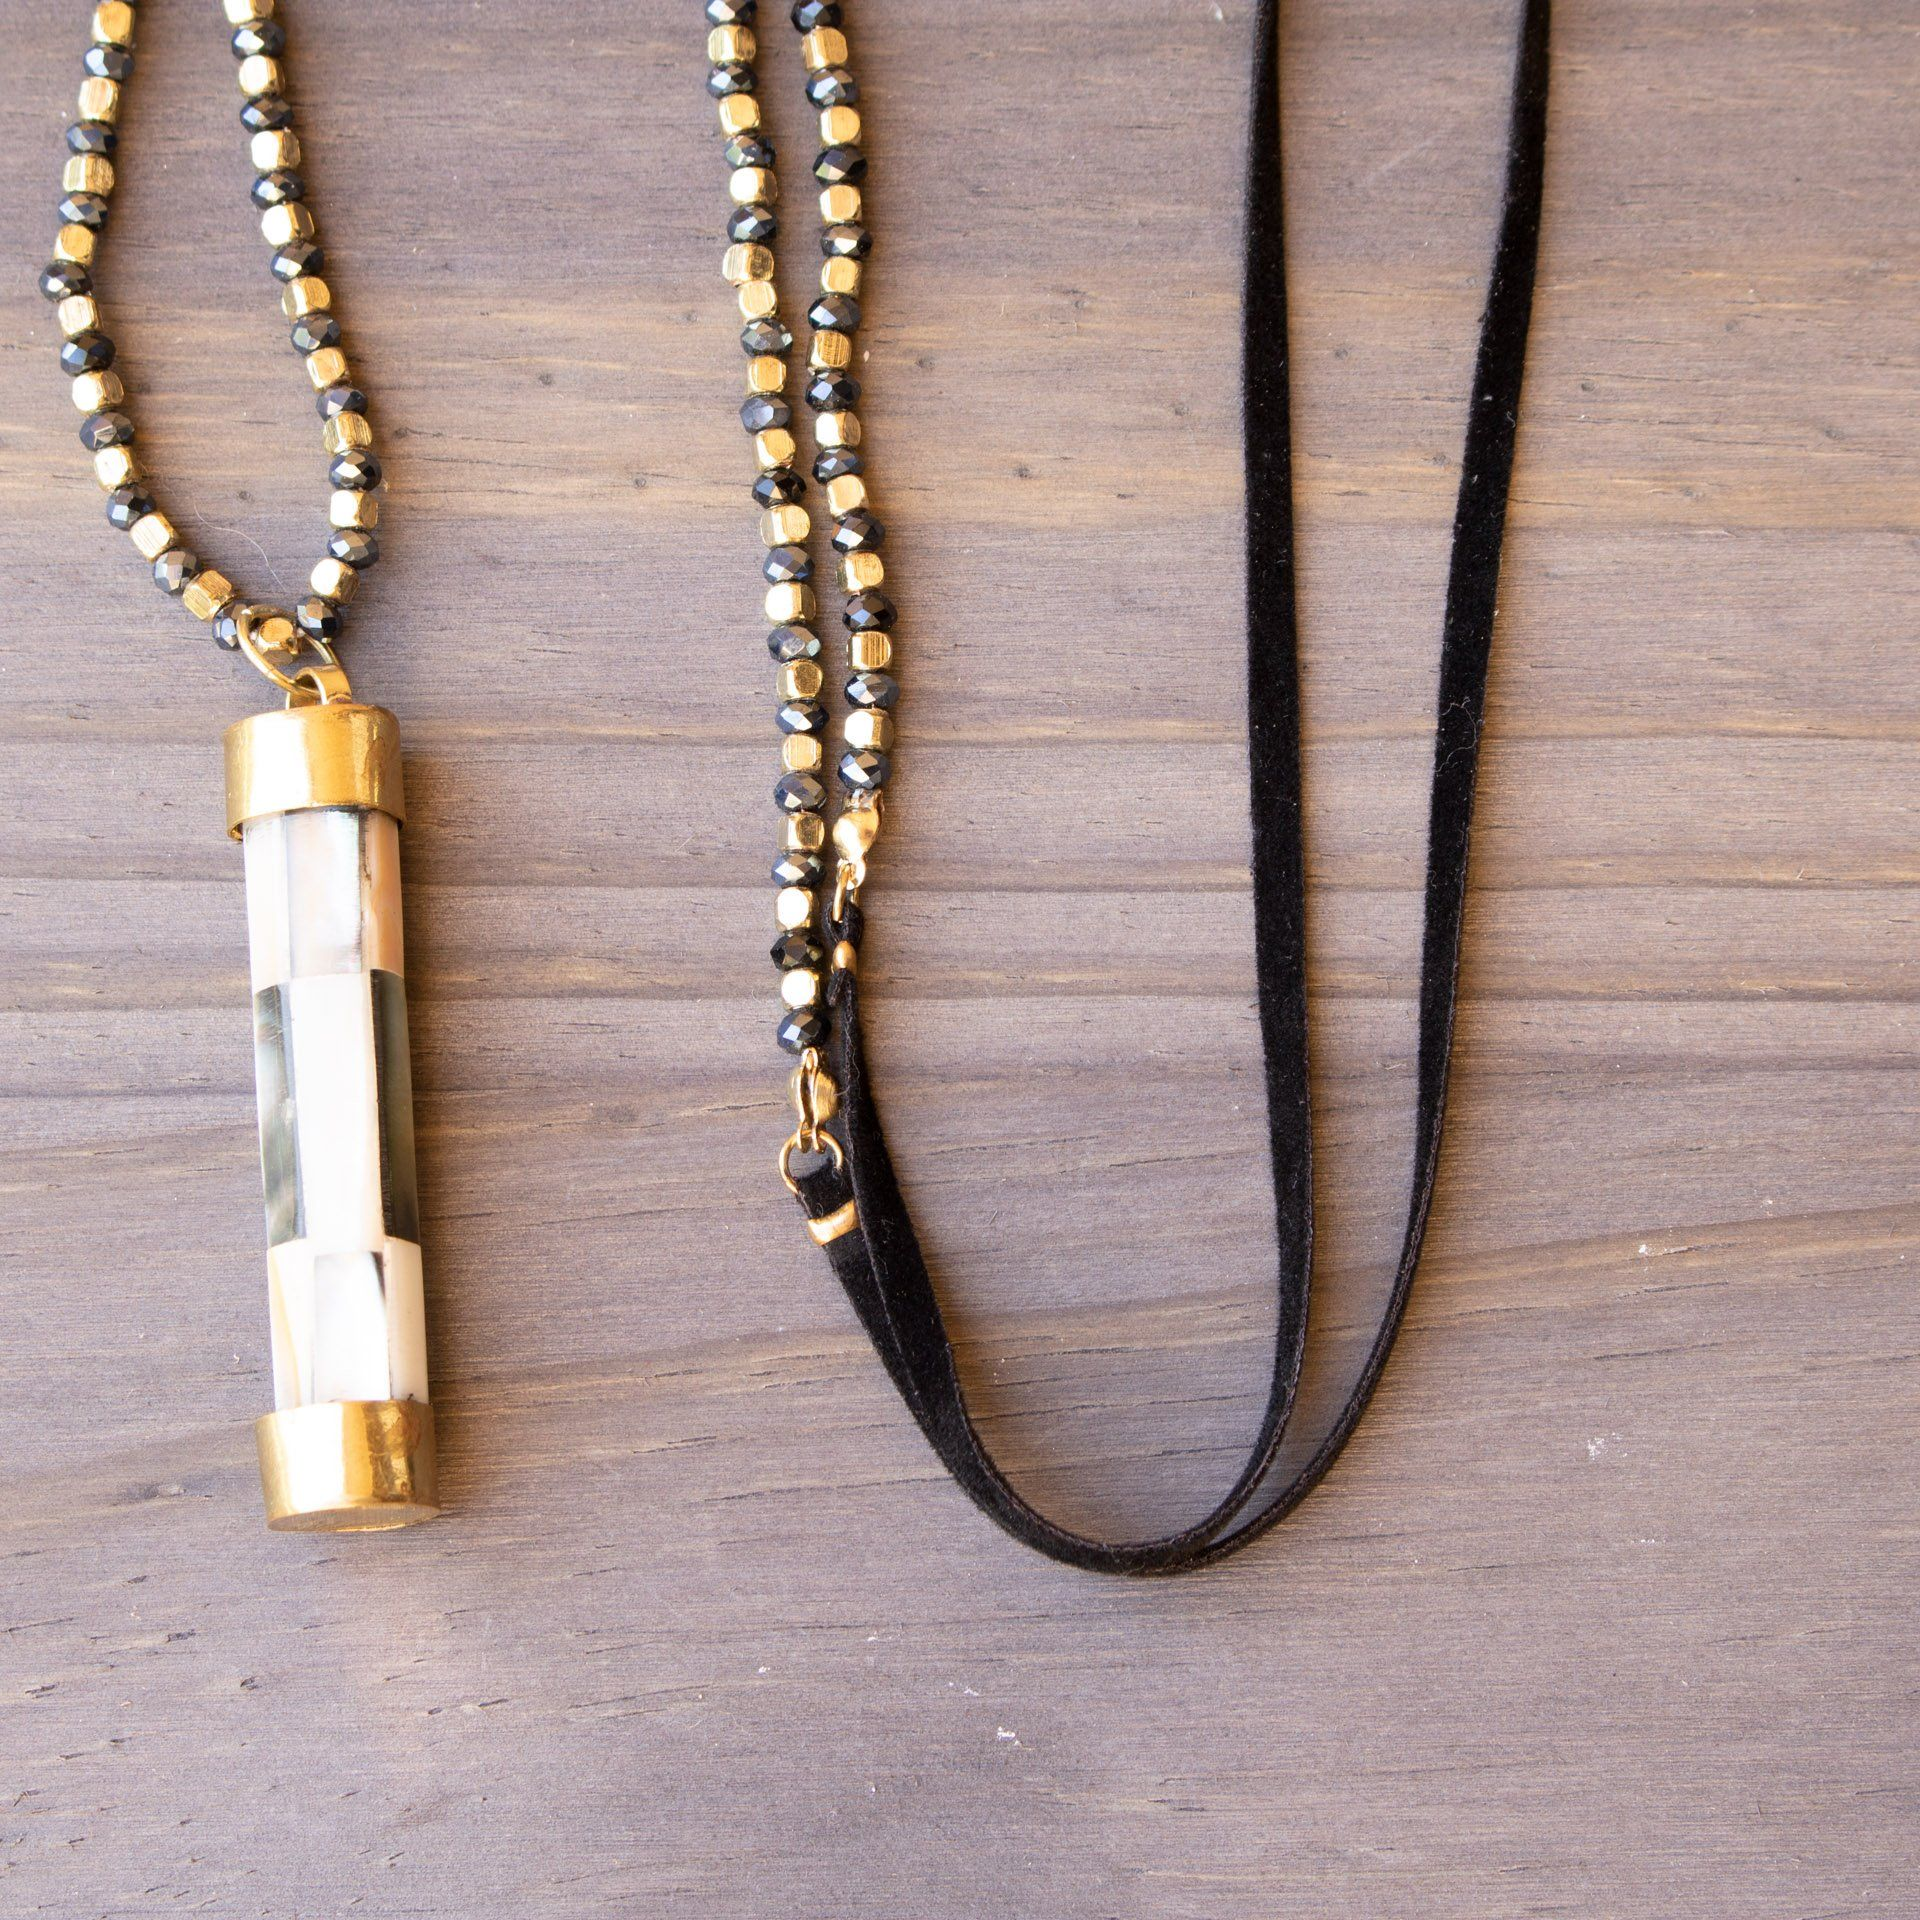 Beaded And Suede Necklace With Mother Of Pearl Pendant - Live 4